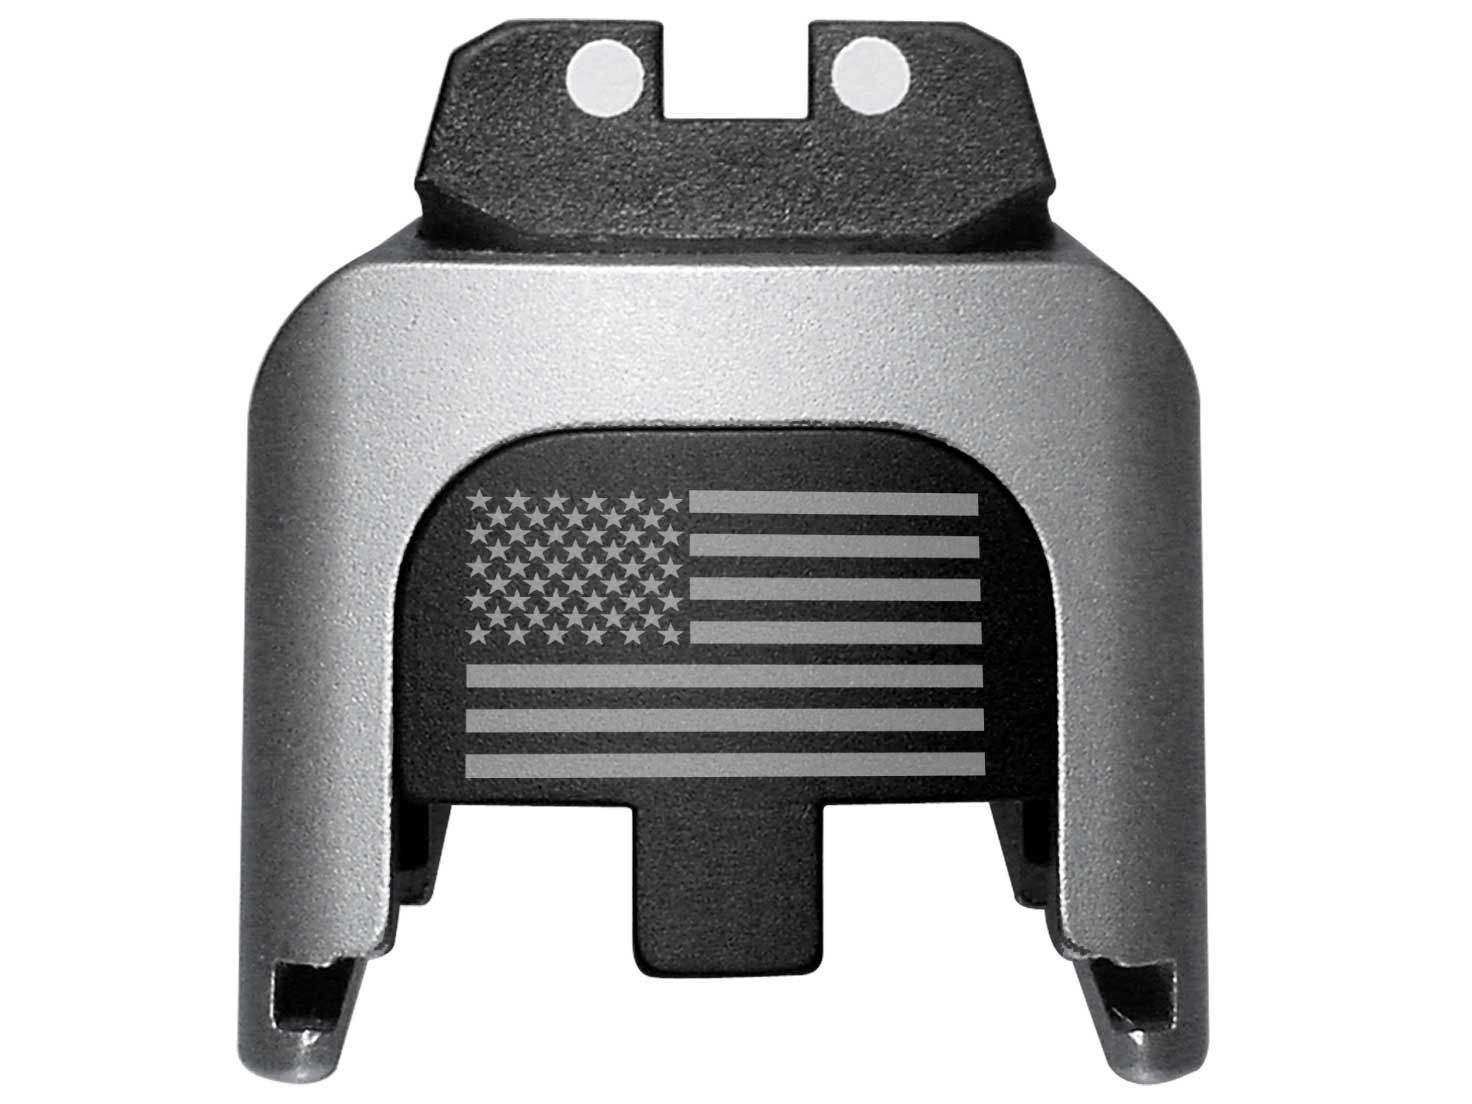 SD40VE 9mm .40 Zero F-CKS Given SD9 BASTION Laser Engraved Rear Cover Slide Back Plate for Smith and Wesson S/&W SD9VE SD40